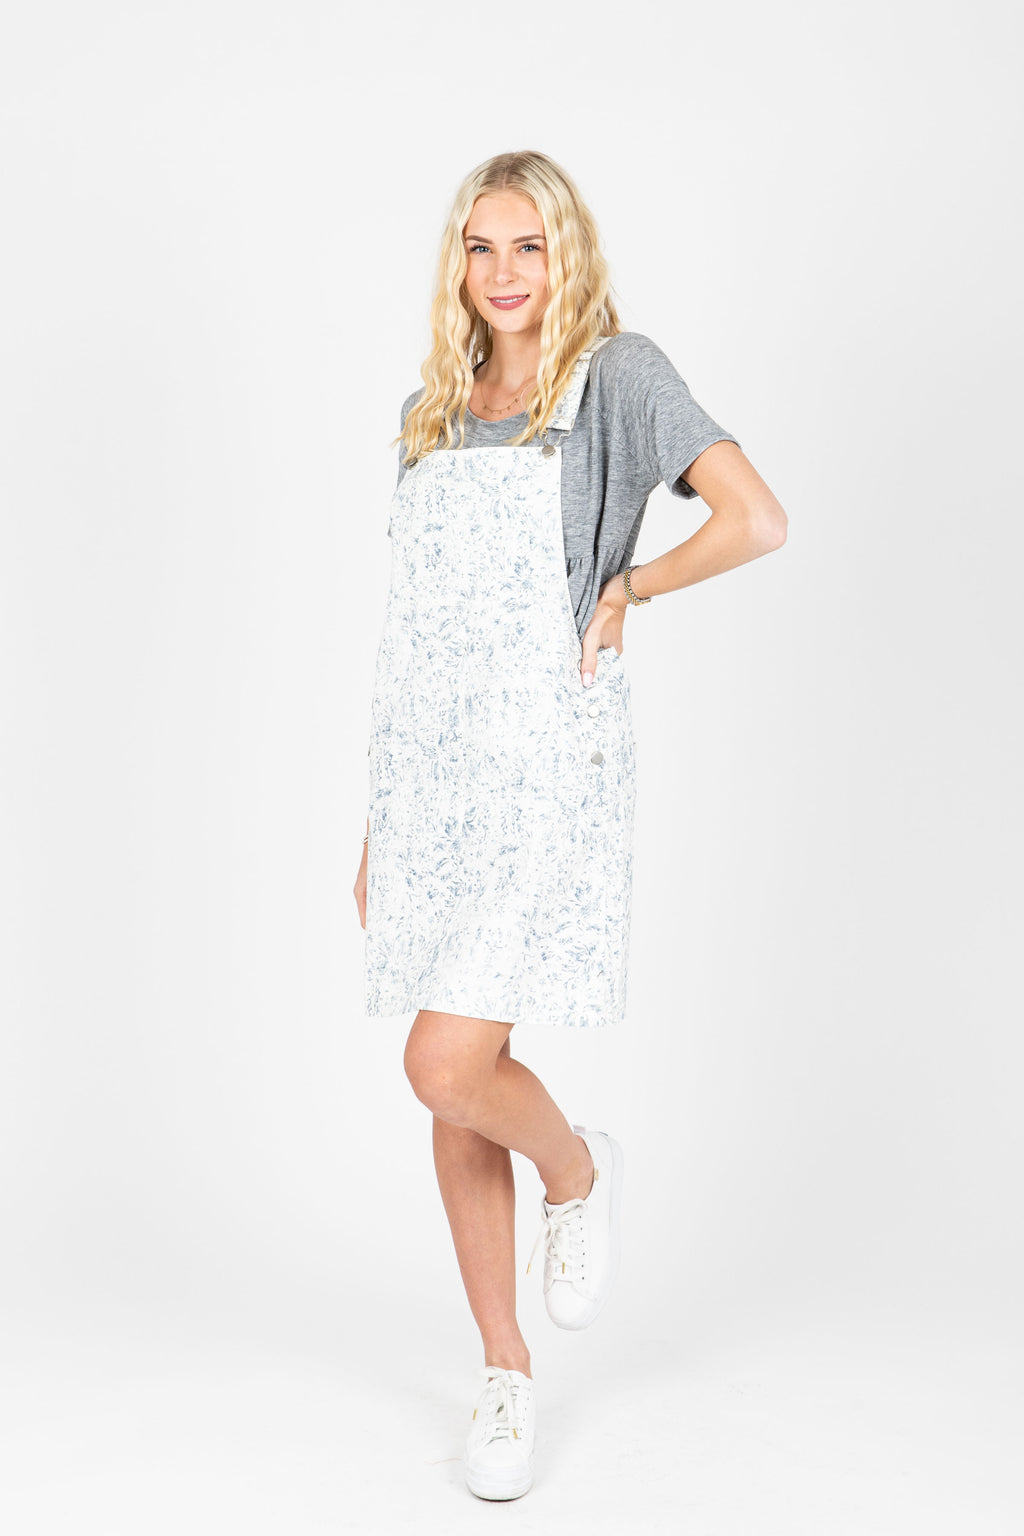 The Julia Patterned Jumper Dress in Blue, studio shoot; front view